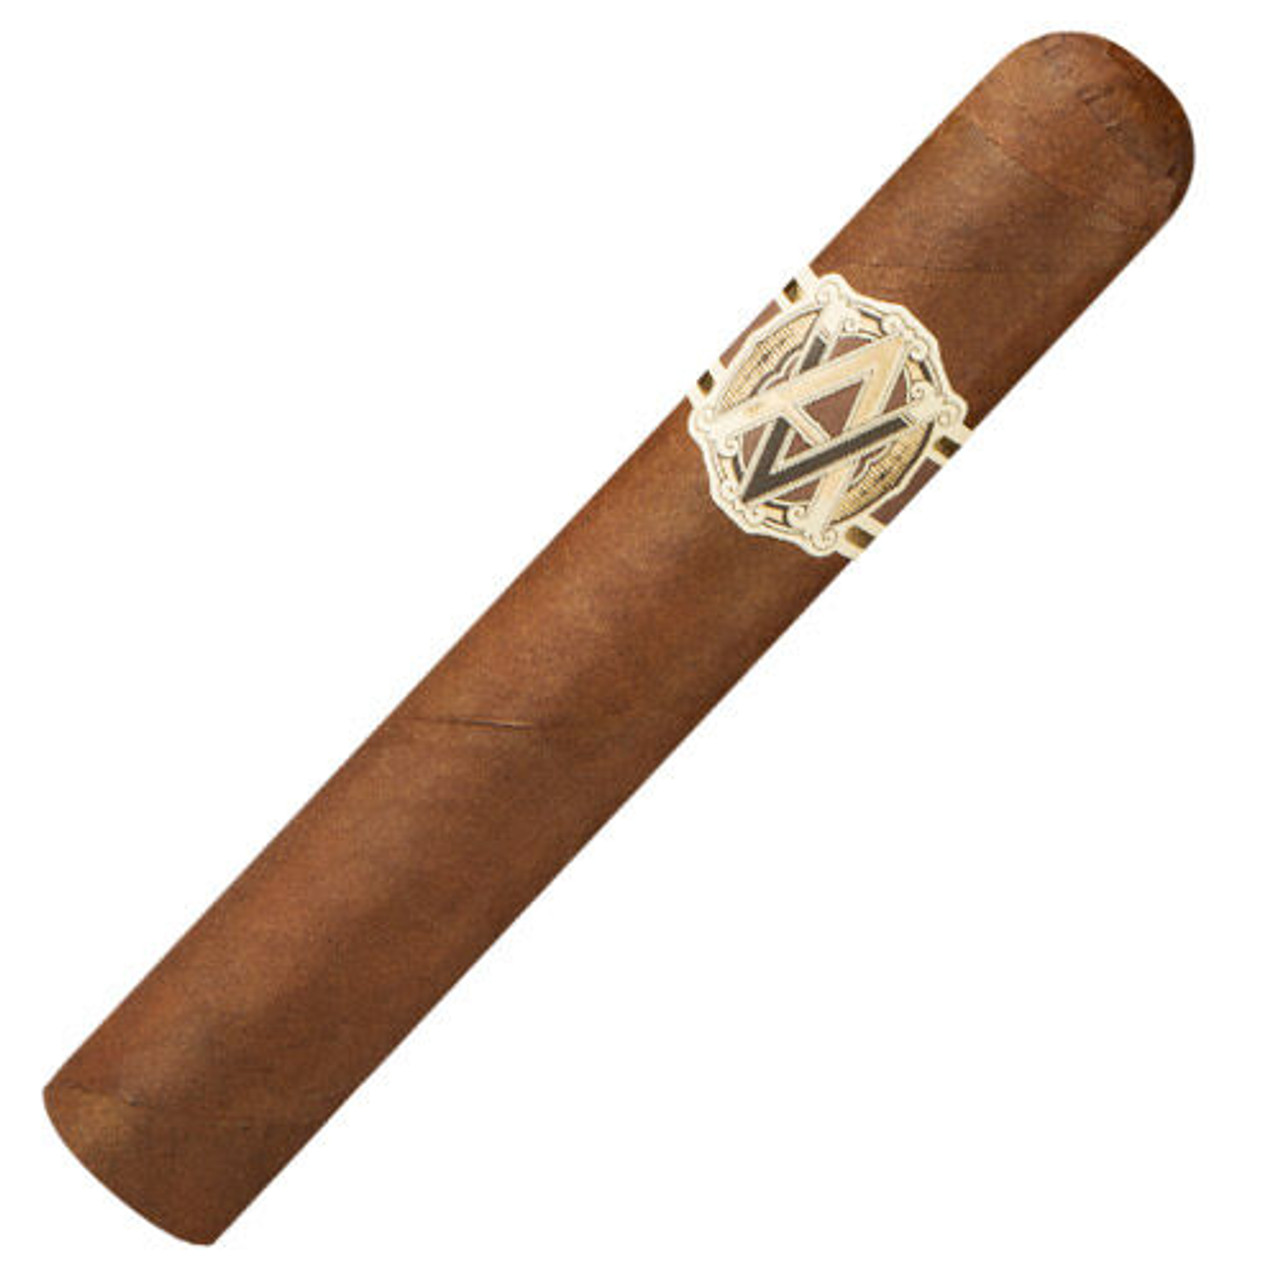 AVO Heritage Robusto Cigars - 4.88 x 50 (Box of 20)